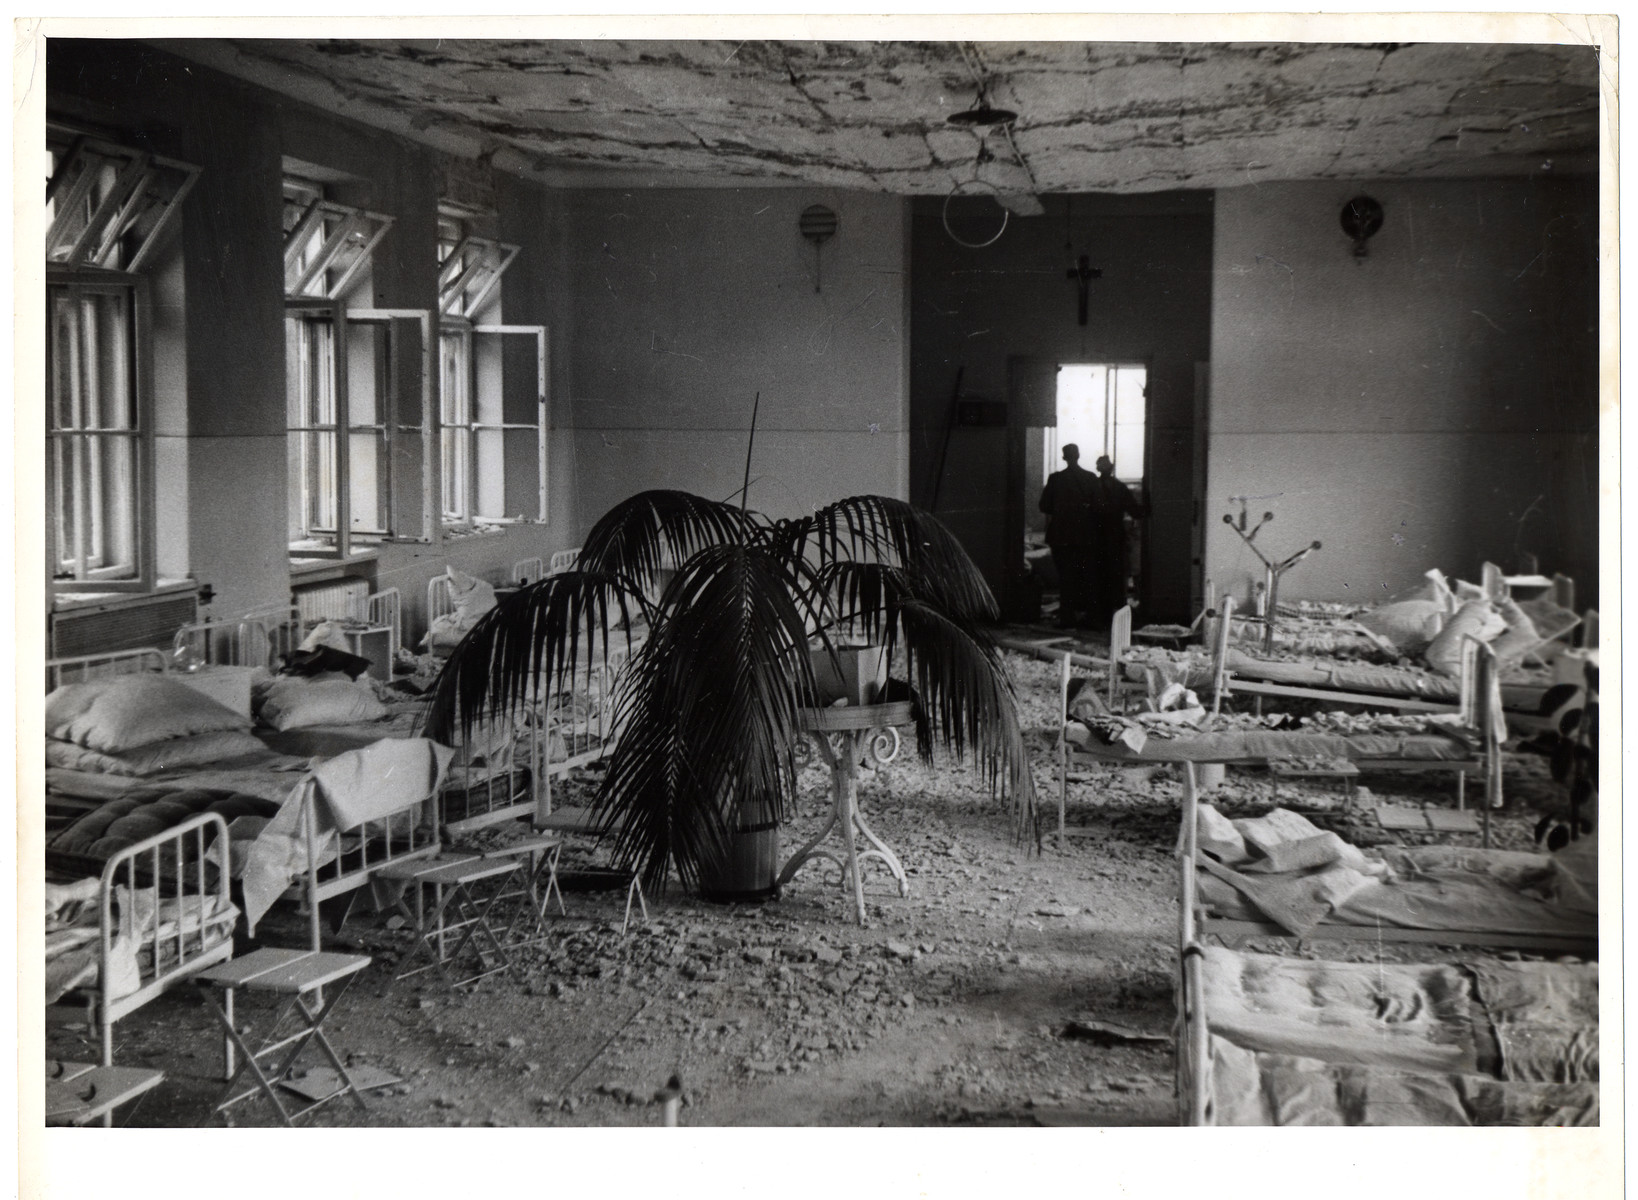 Interior view of the destroyed Catholic Hospital of the Transfiguration, one of Warsaw's largest hospitals.